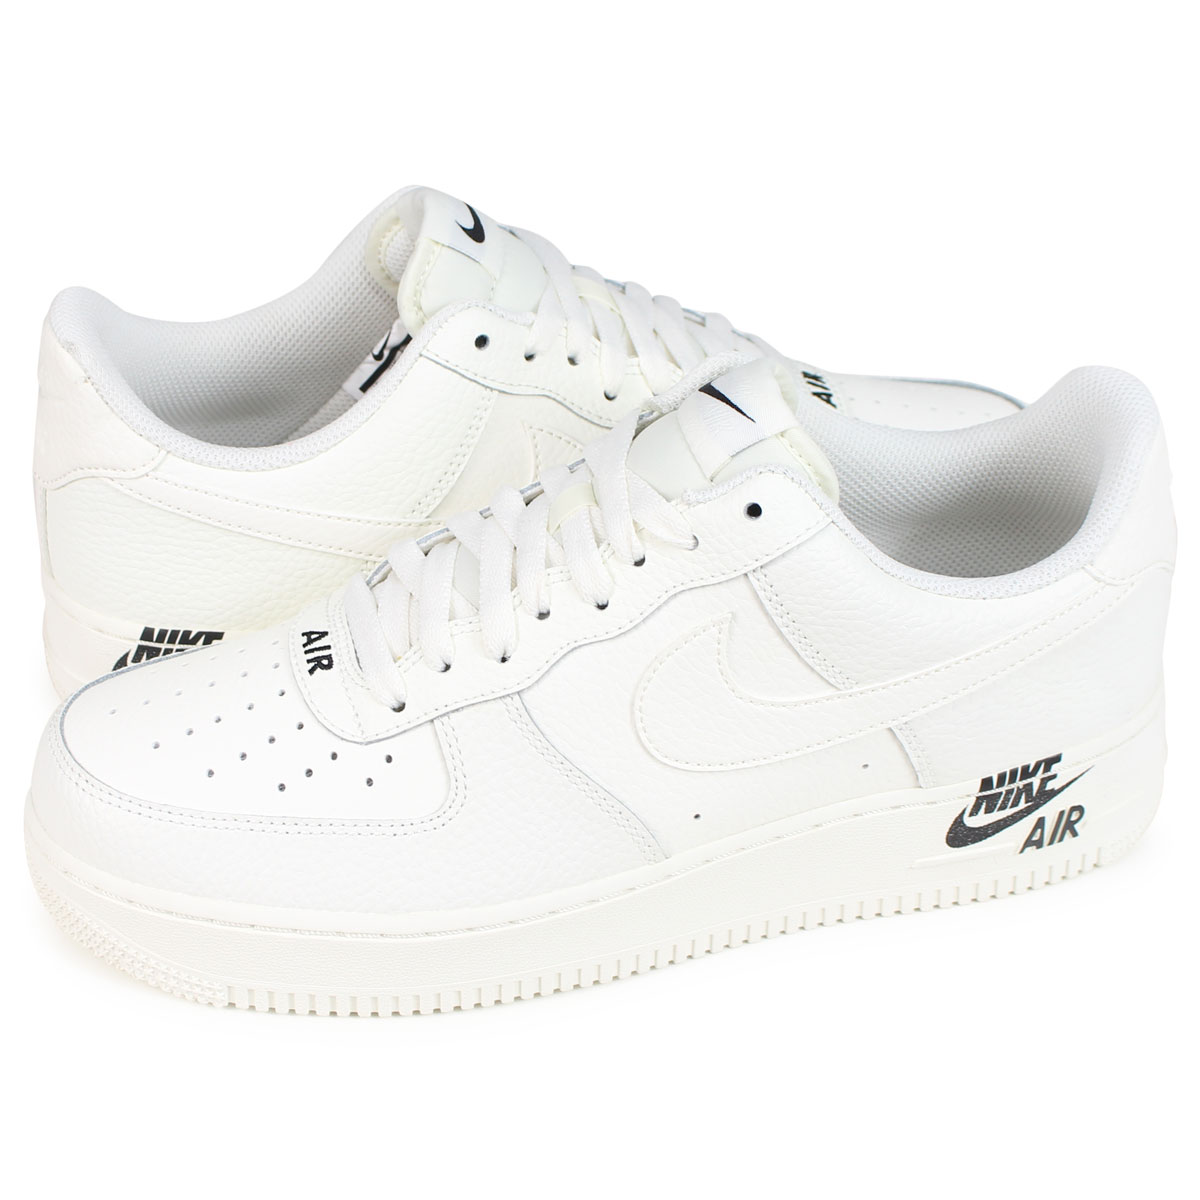 Nike NIKE air force 1 sneakers men AIR FORCE 1 07 LEATHER AJ7280 102 white